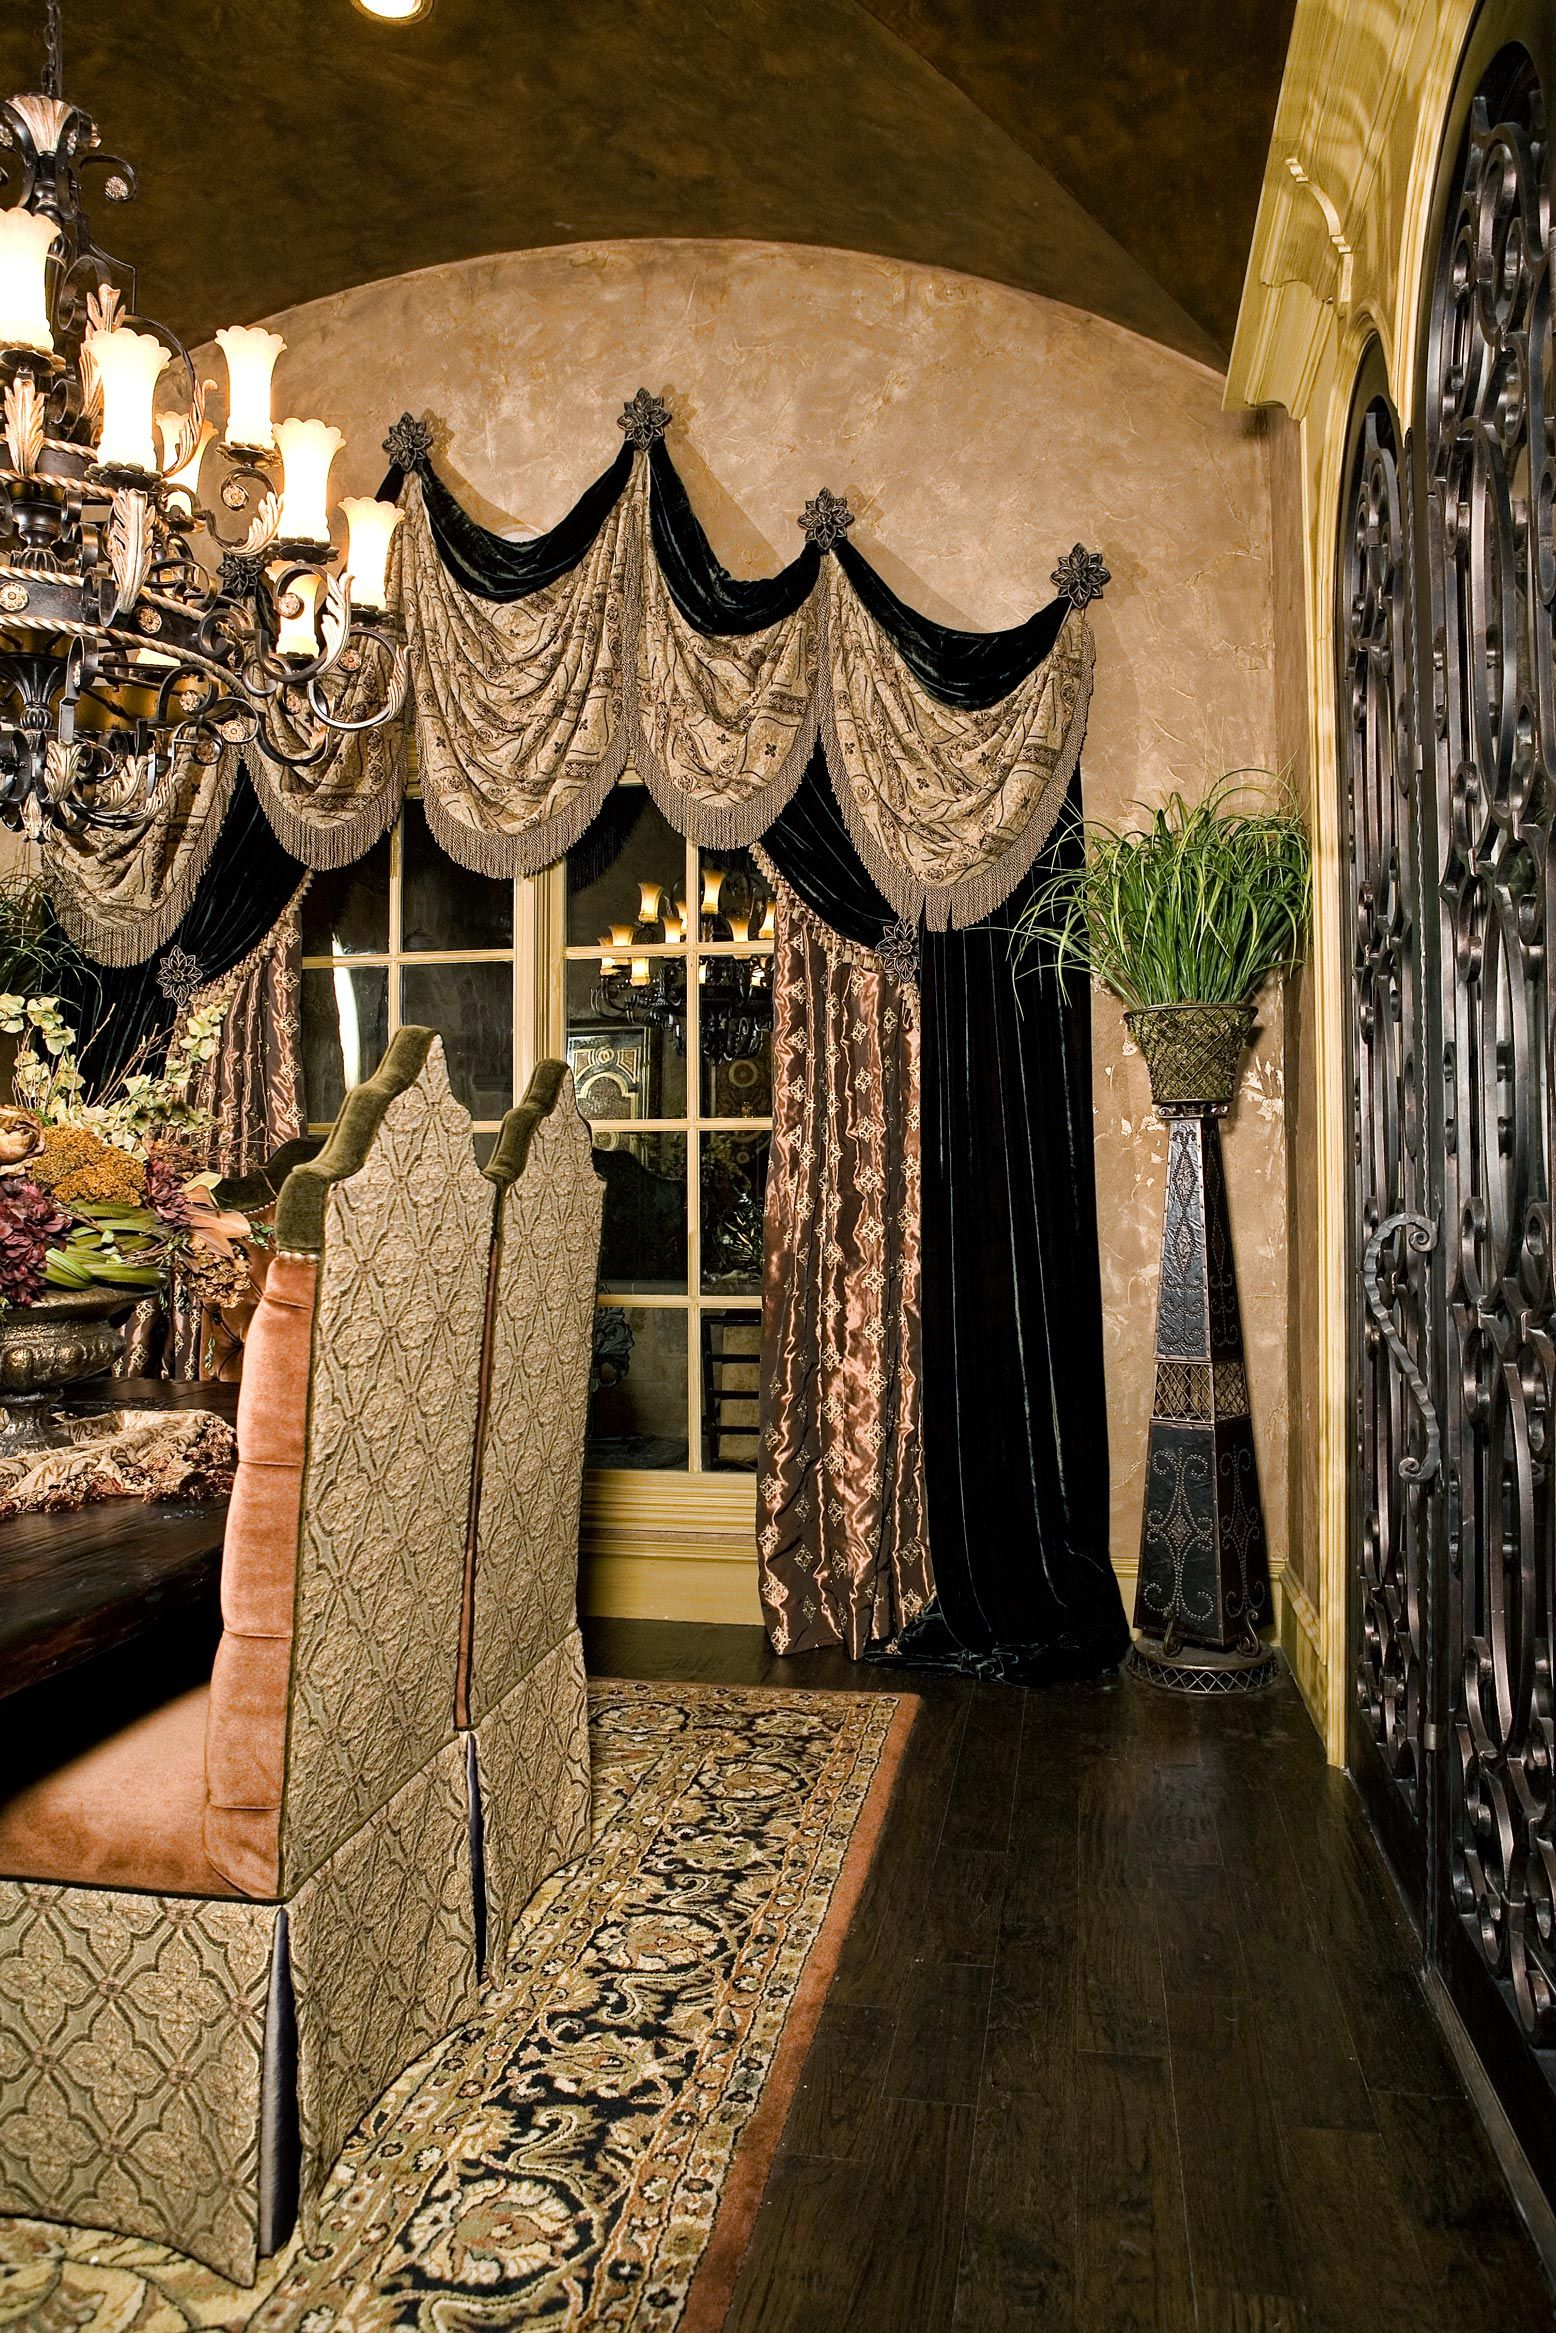 Formal Tuscan Dining Room Custom Draperies Of This Style Available DesignNashville Shipping To All Locations